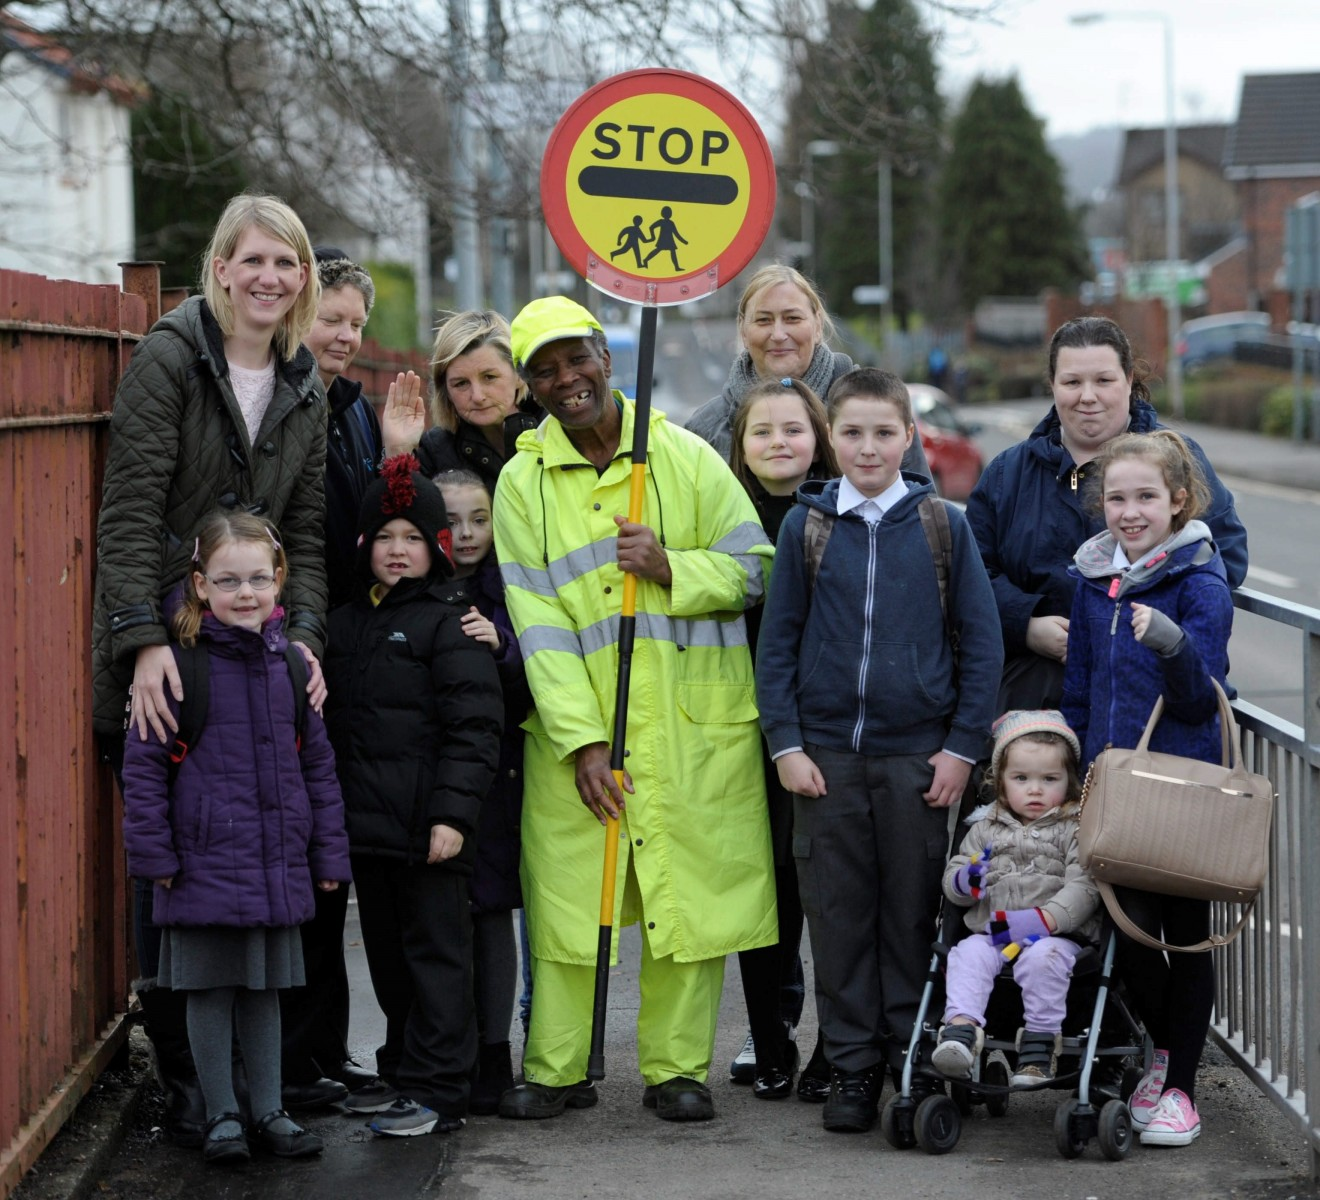 """FILE PICTURE - Local parents and children show their support for local lollipop man Nkosana Mdikane, 73, from Dumbarton, Dunbartonshire, Scotland, outside Aitkenbar Primary School in Dumbarton, February 27, 2015, where he has been told to stop high fiving the school children. See Centre Press story CPLOLLIPOP; A cheery lollipop man was forced to resign with a """"bleeding heart"""" after council bosses BANNED him from dancing and high-fiving school children. Nkosana Mdikane, 75, was hailed 'Scotland's happiest lollipop man' after helping thousands of kids cross the road with his friendly greetings. He was praised for his """"excellent service"""" when he took up the road safety job outside Aitkenbar Primary in Dumbarton with West Dunbartonshire Council in 2013. But grumpy officials performed a U-turn and told him lollipop men must """"remain static with one hand on their stick and the other stretched outwards""""."""